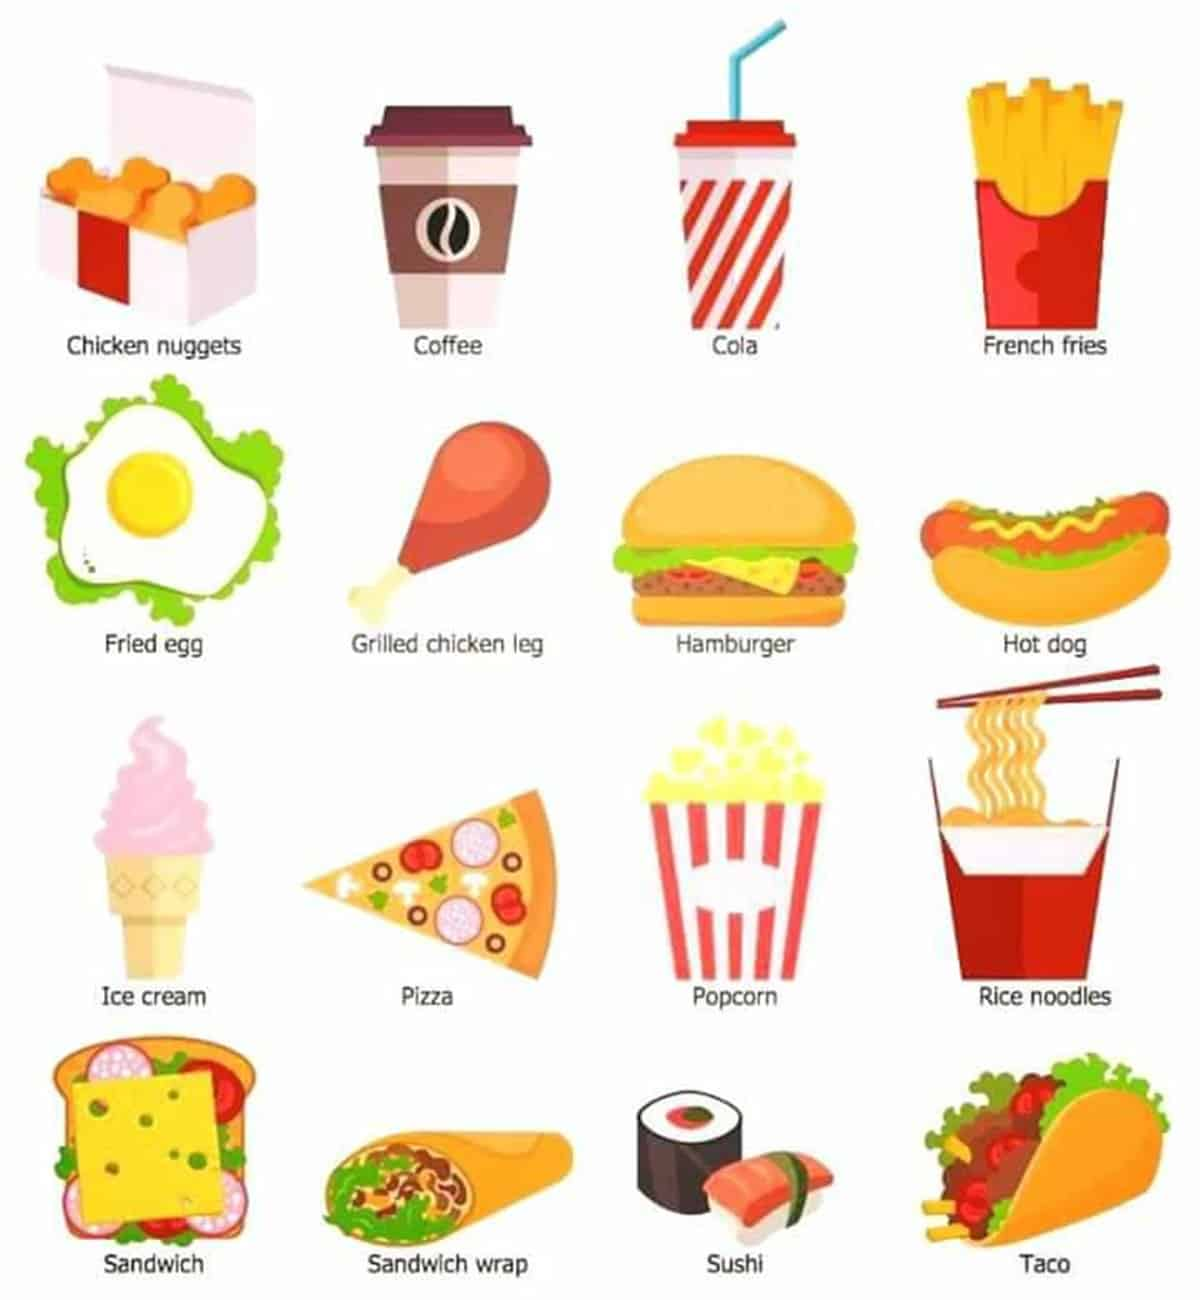 English Vocabulary for Fast Food 1